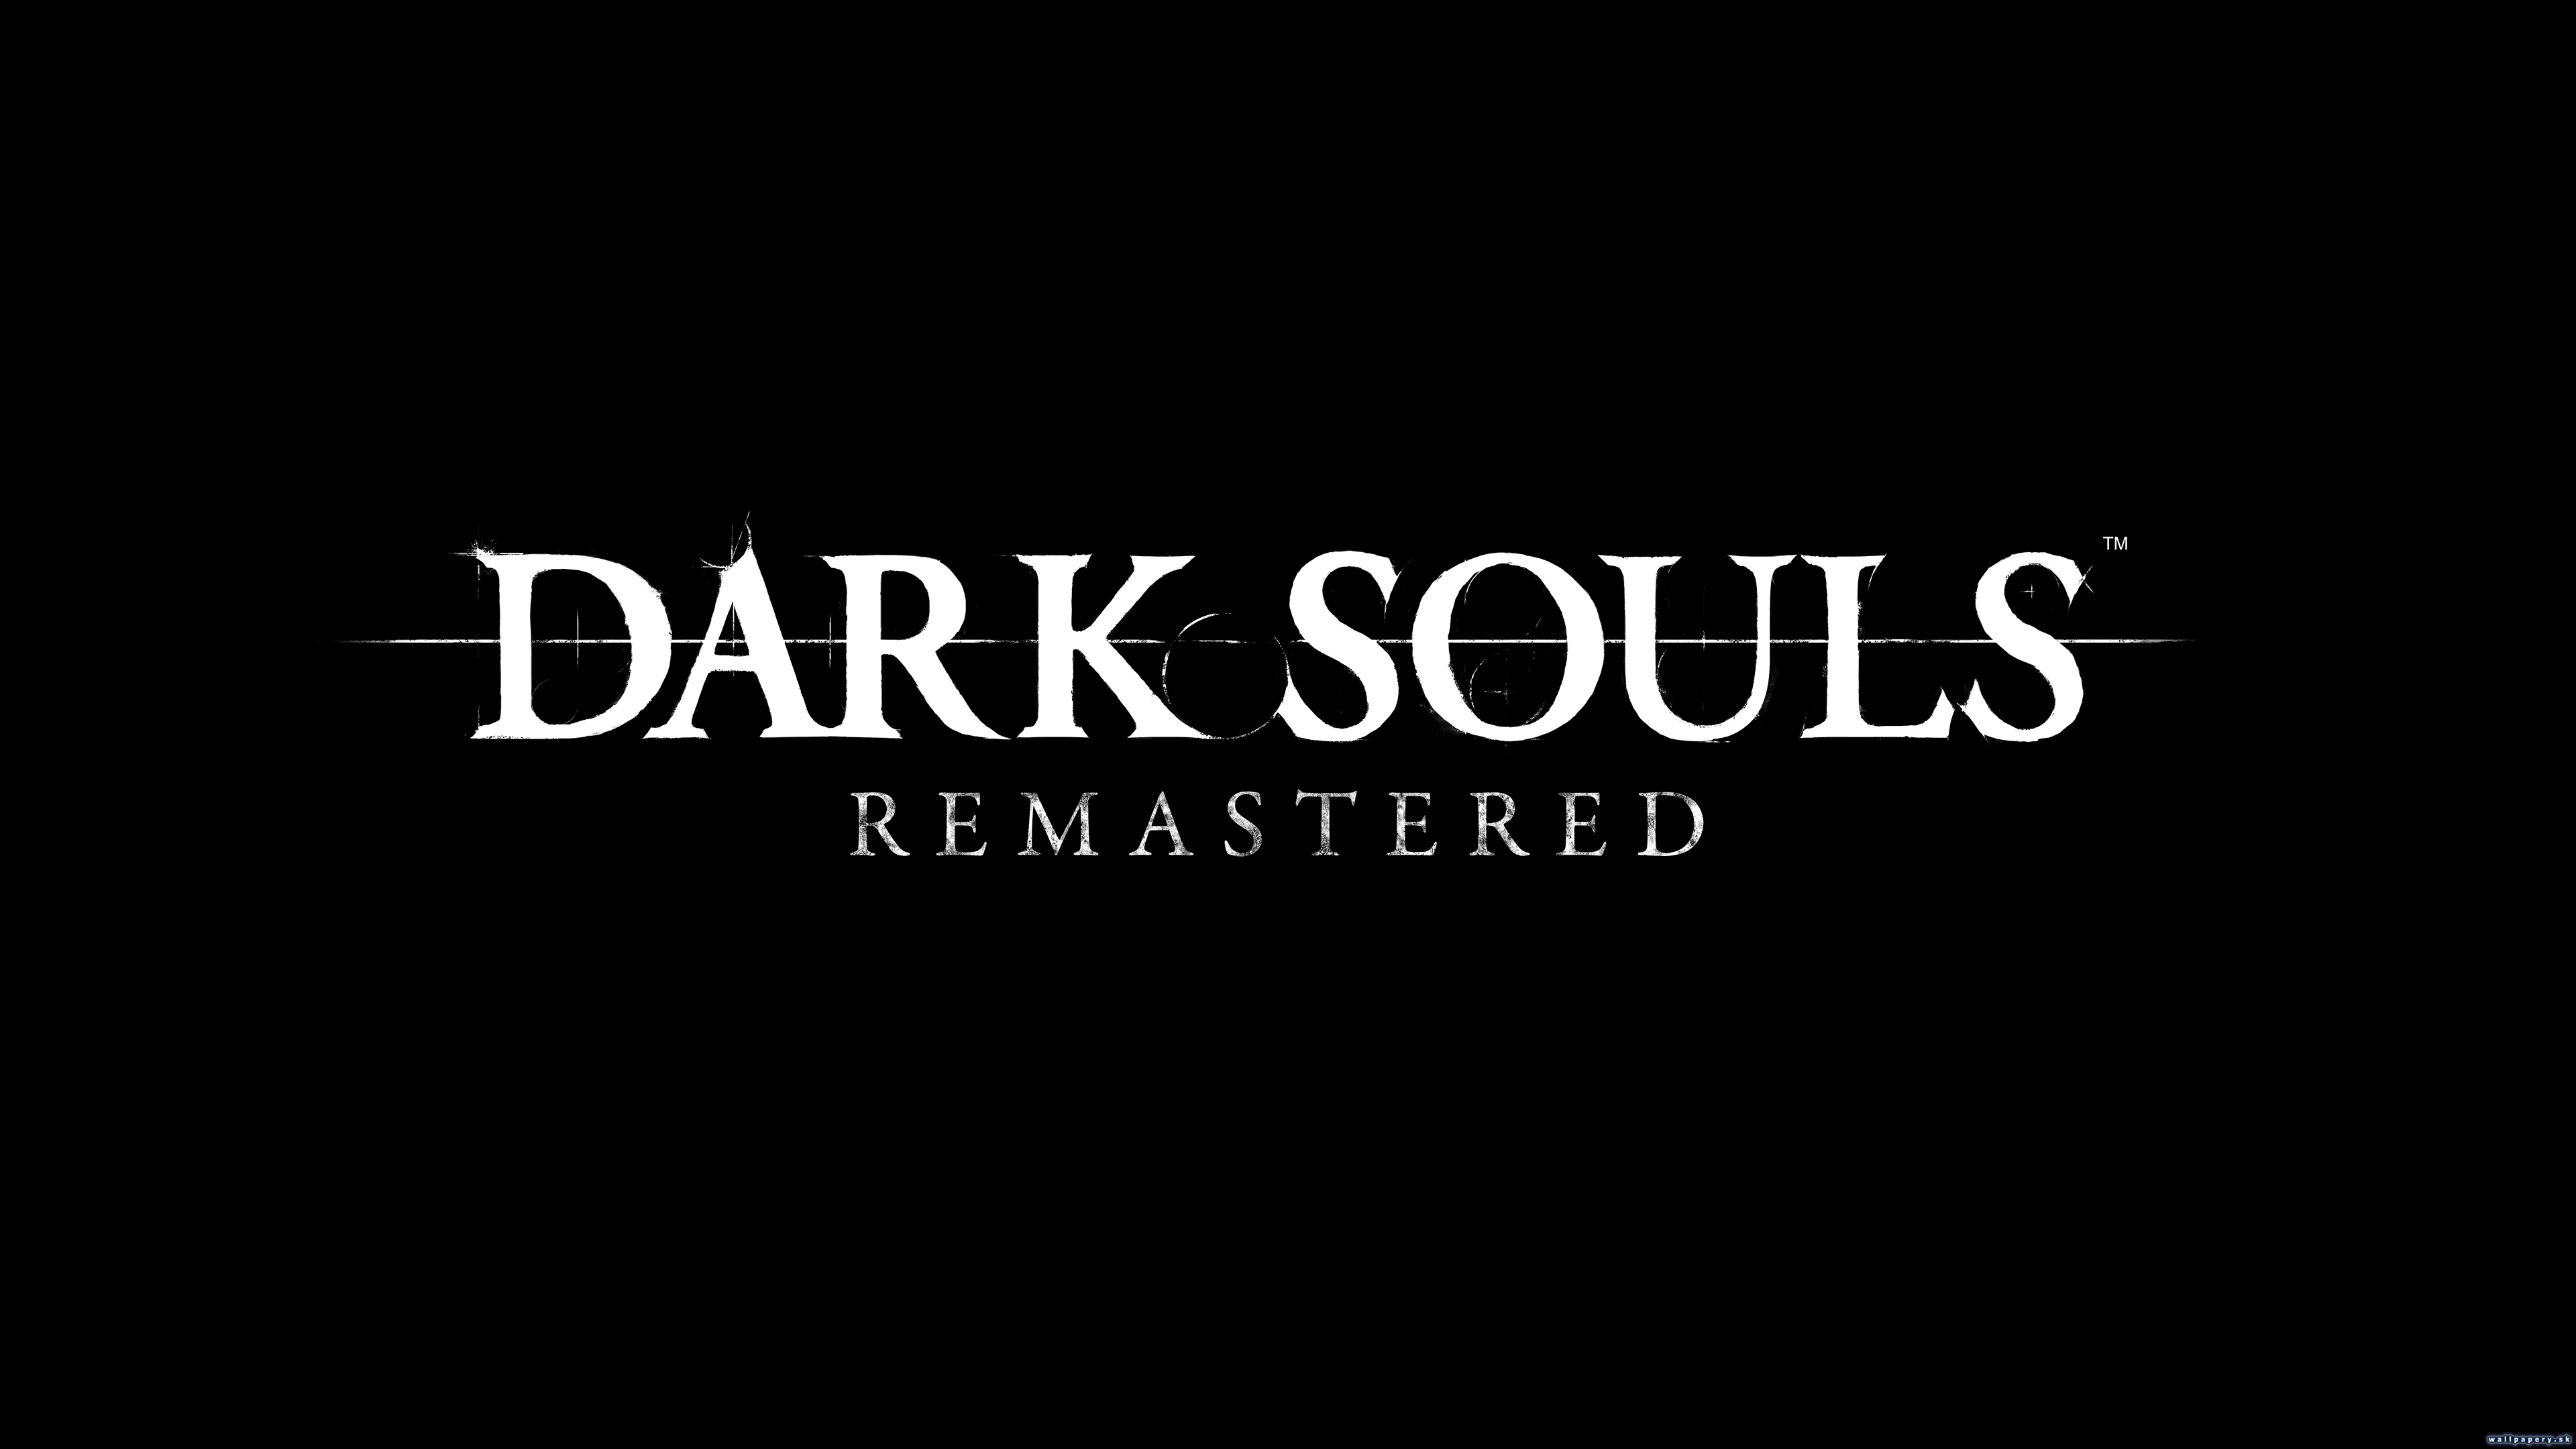 Dark Souls: Remastered - wallpaper 2